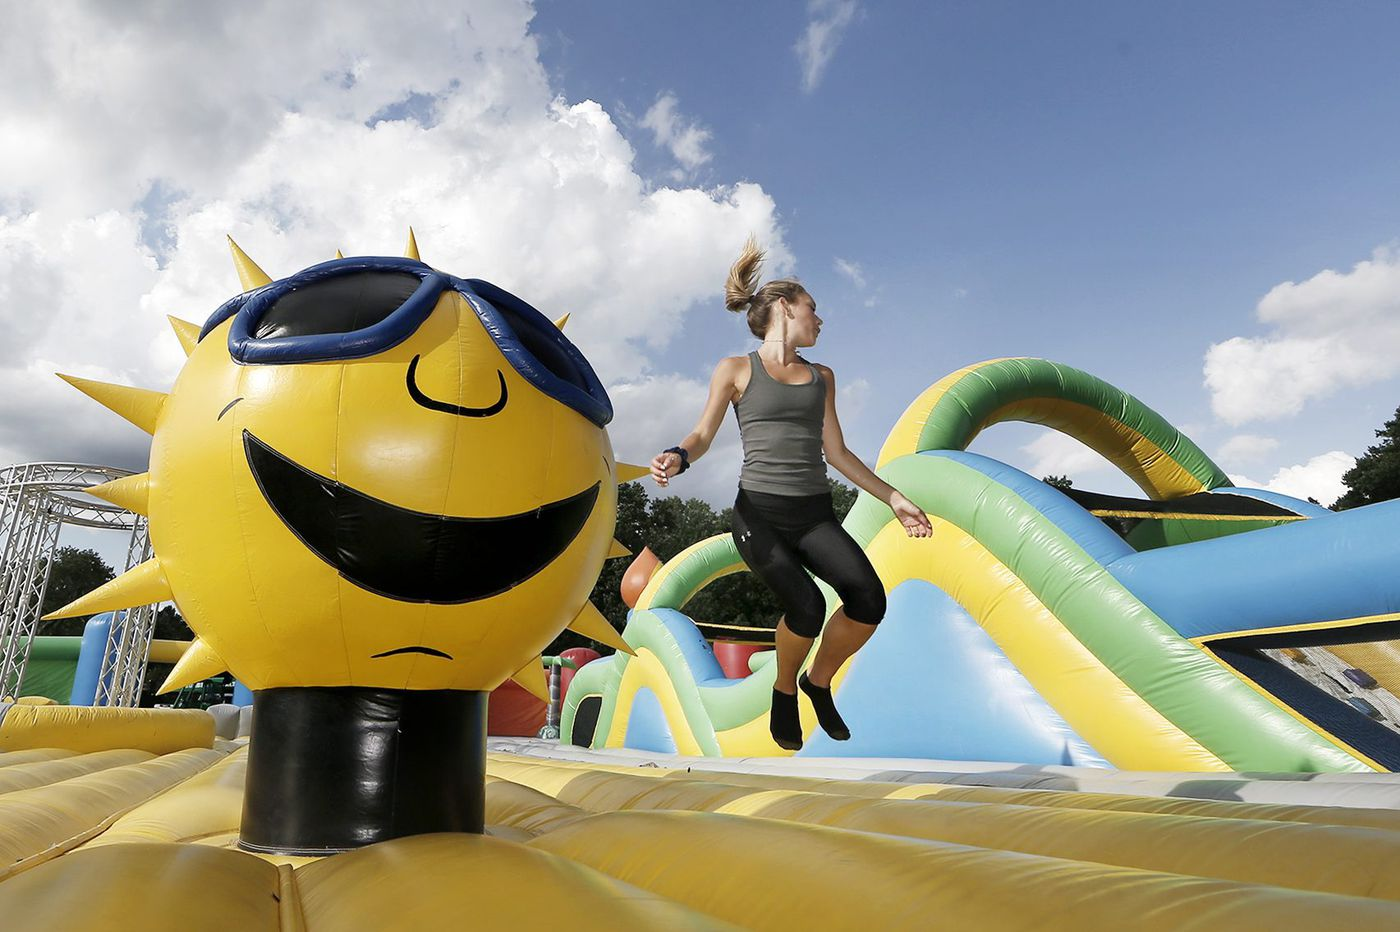 I bounced on the world's biggest bounce house